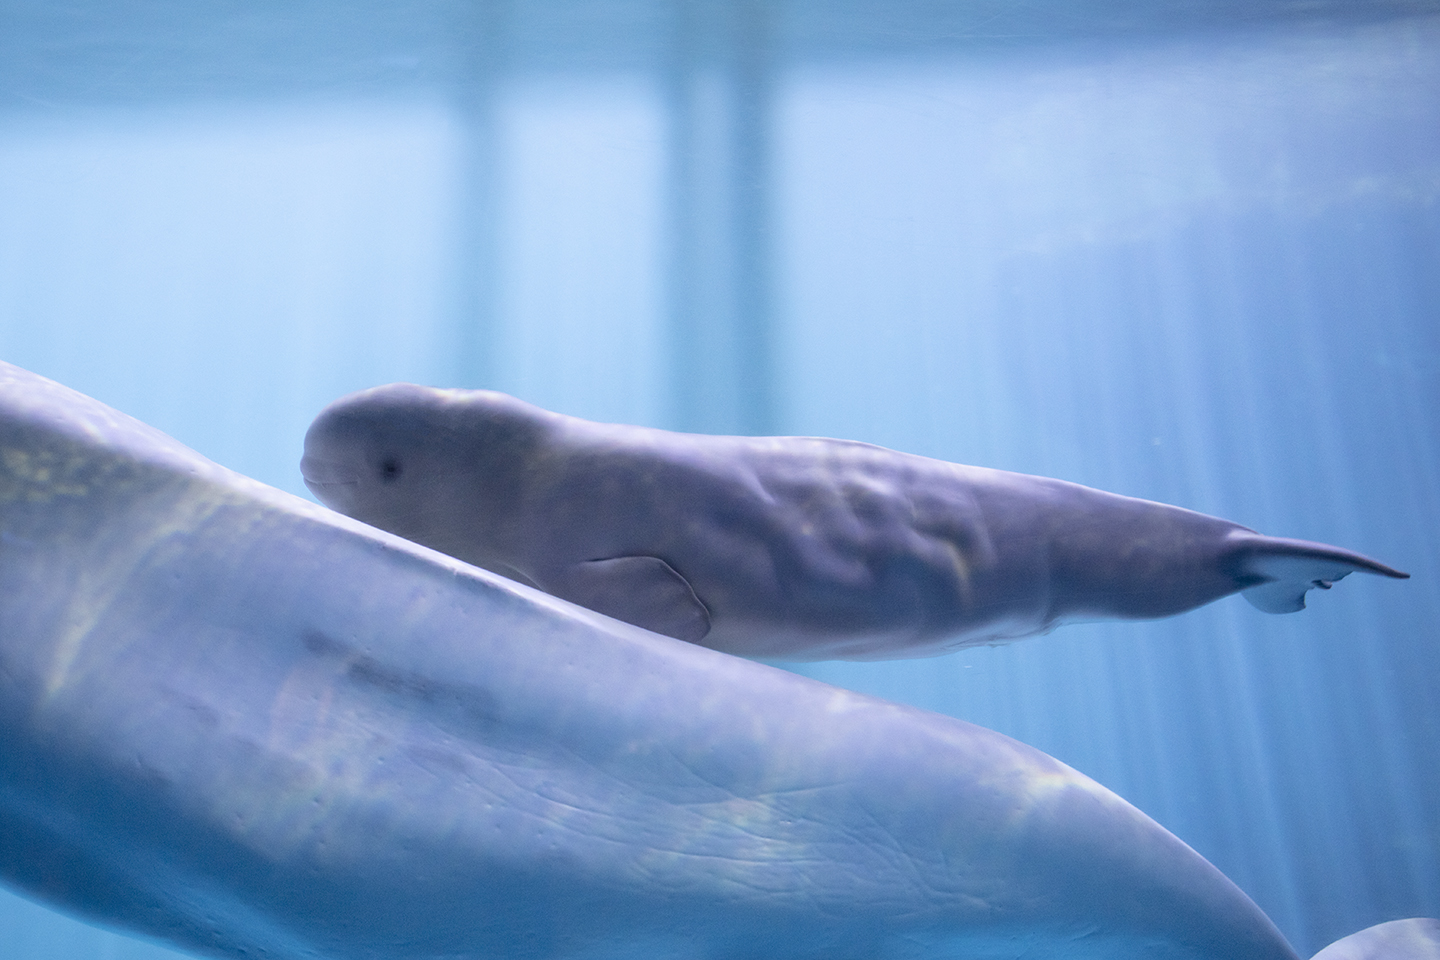 This beluga whale calf born at the Shedd Aquarium needs a name. Your vote will help decide what that name will be.